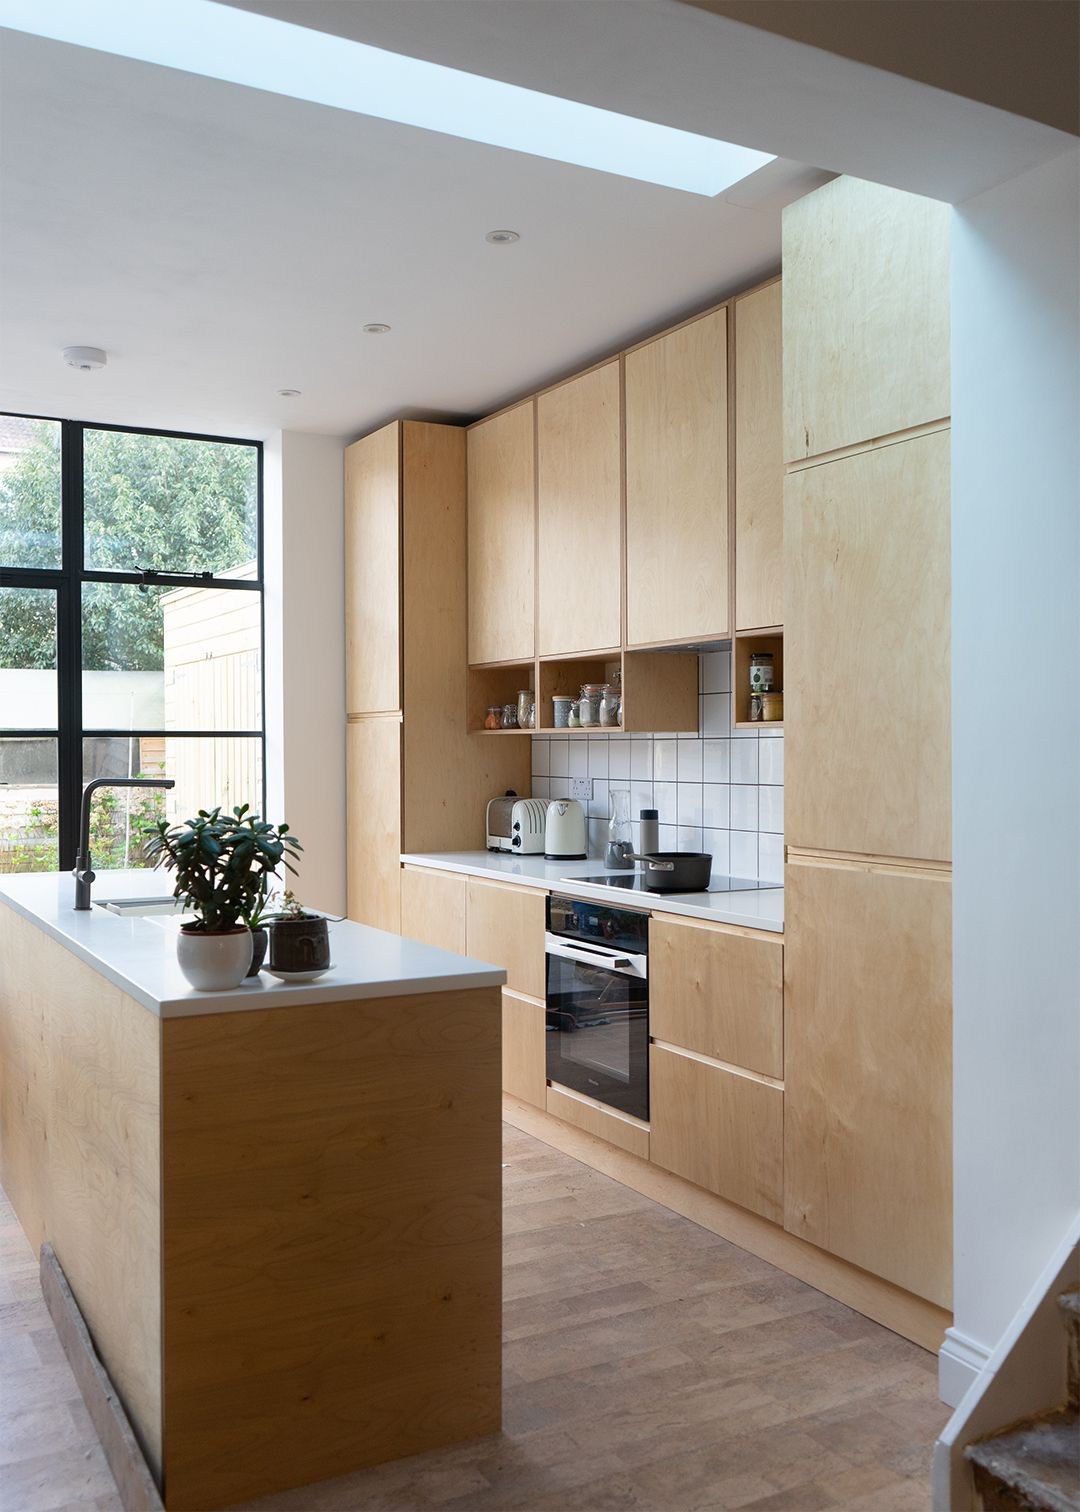 Birch plywood dreams. in 2020 Plywood kitchen, Birch